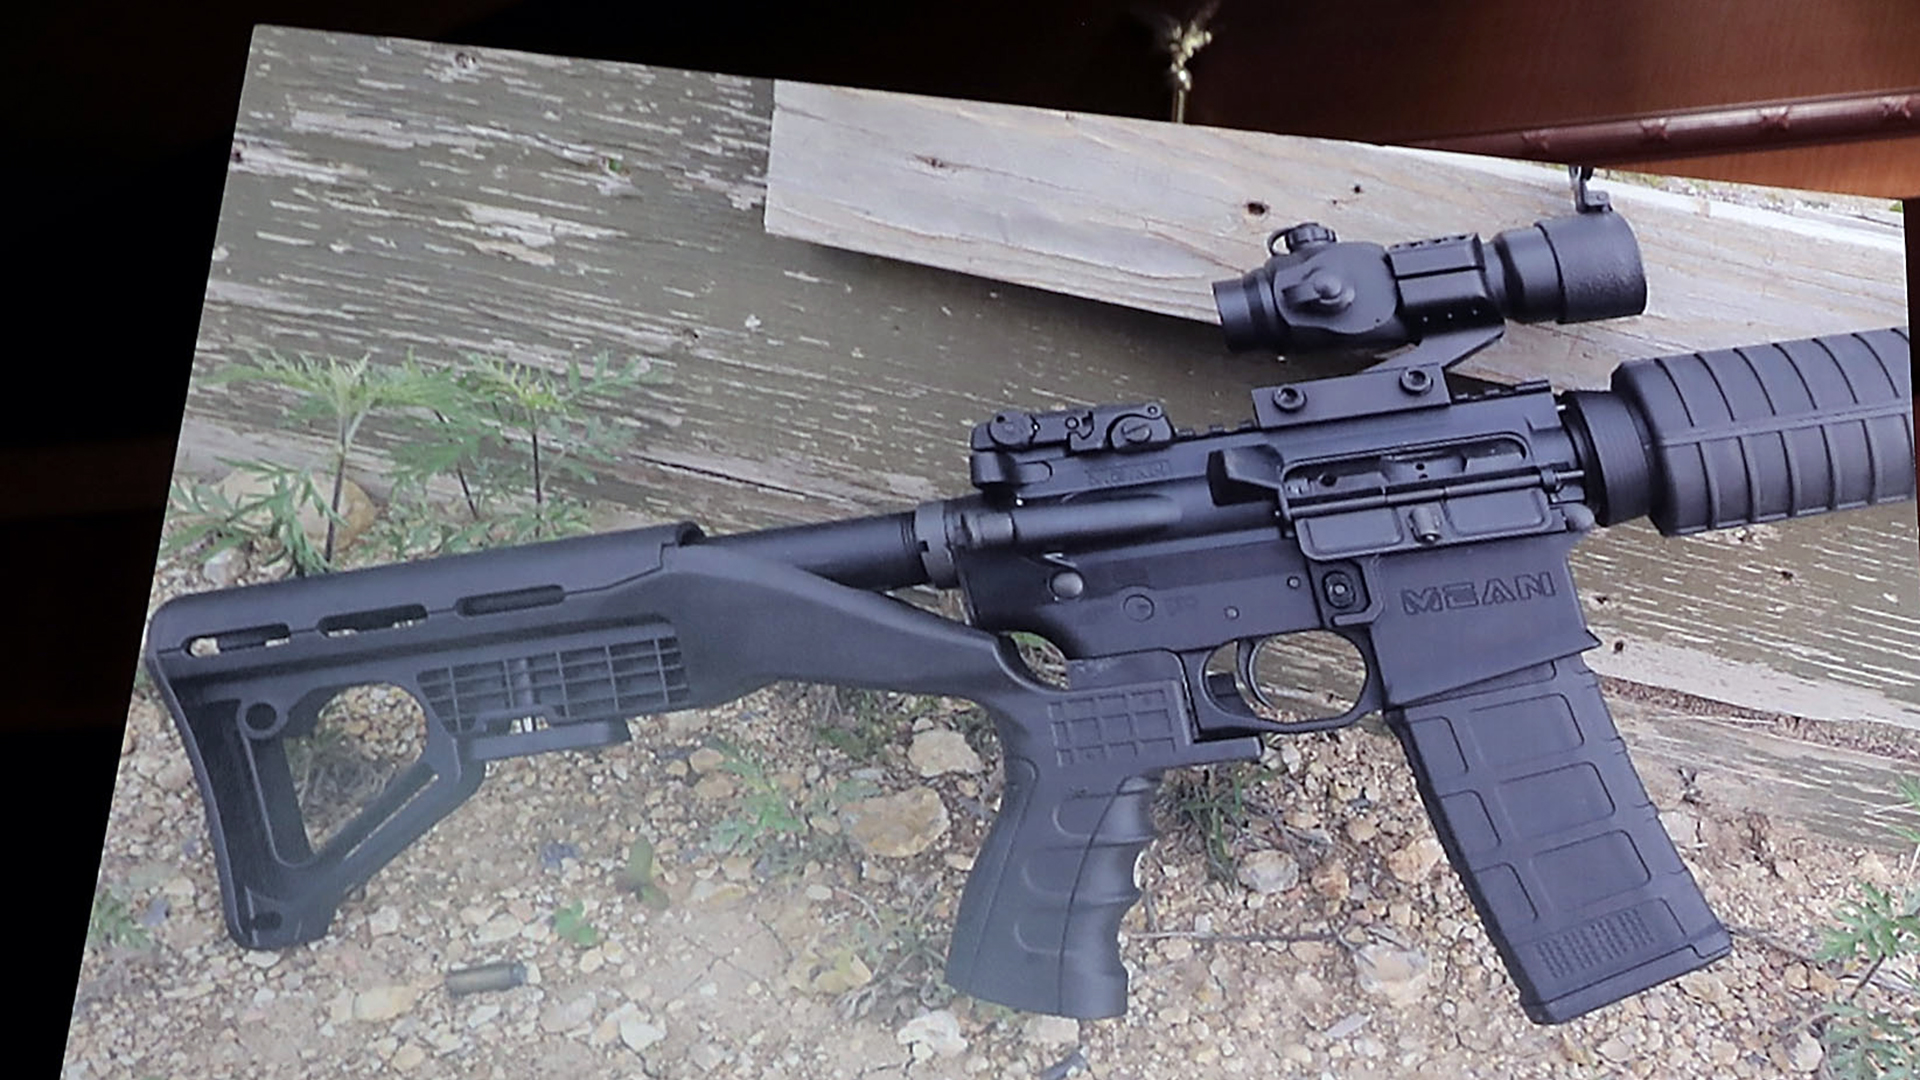 Bump Stock image from press conference-159532.jpg89385224